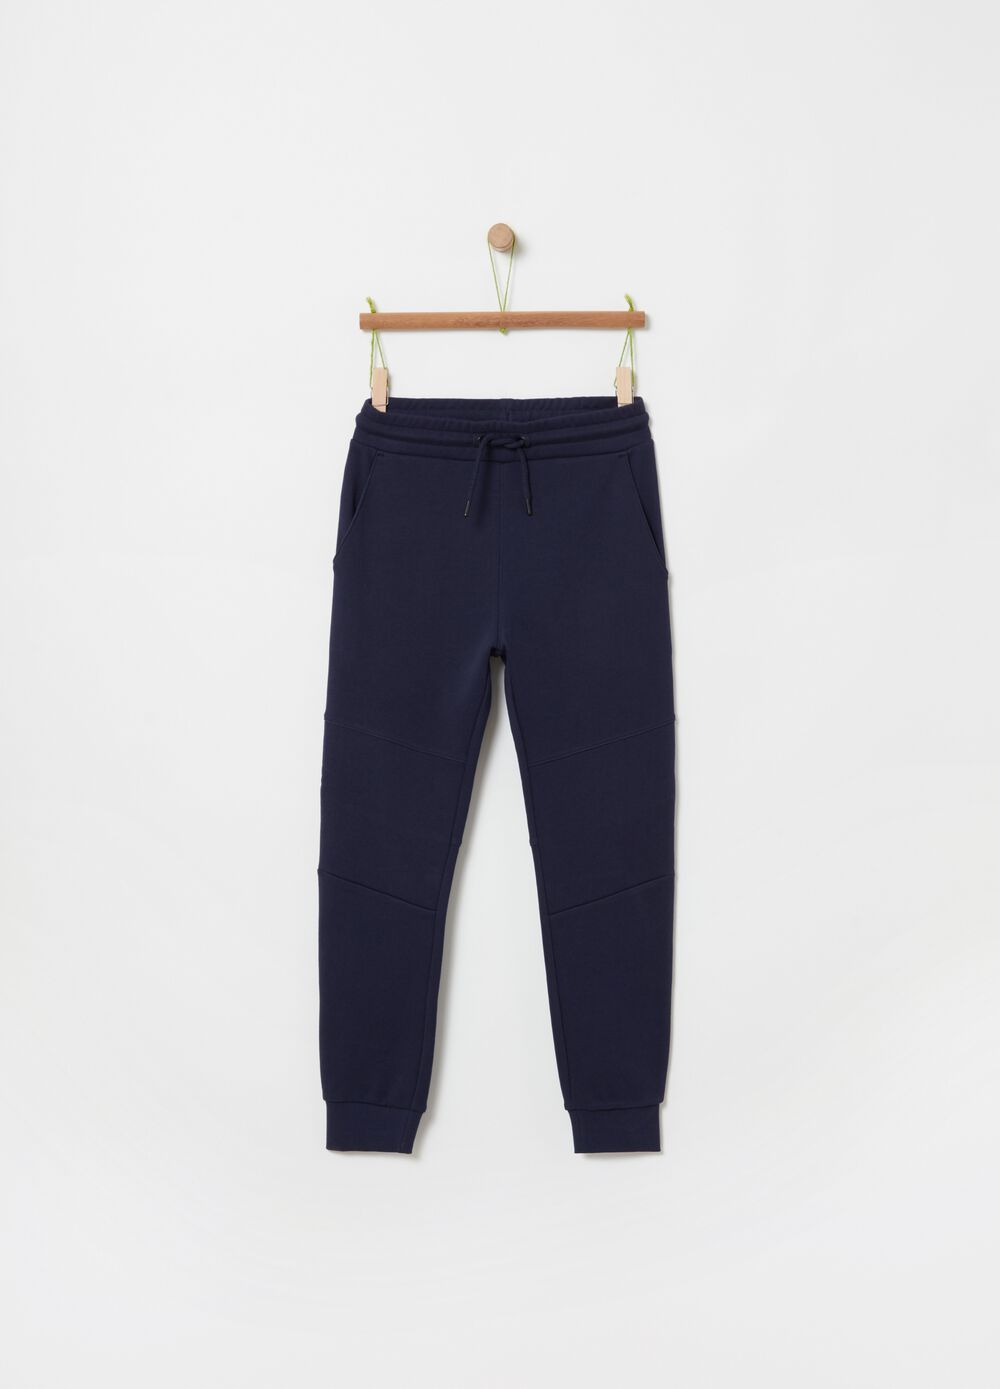 100% organic cotton jogger trousers